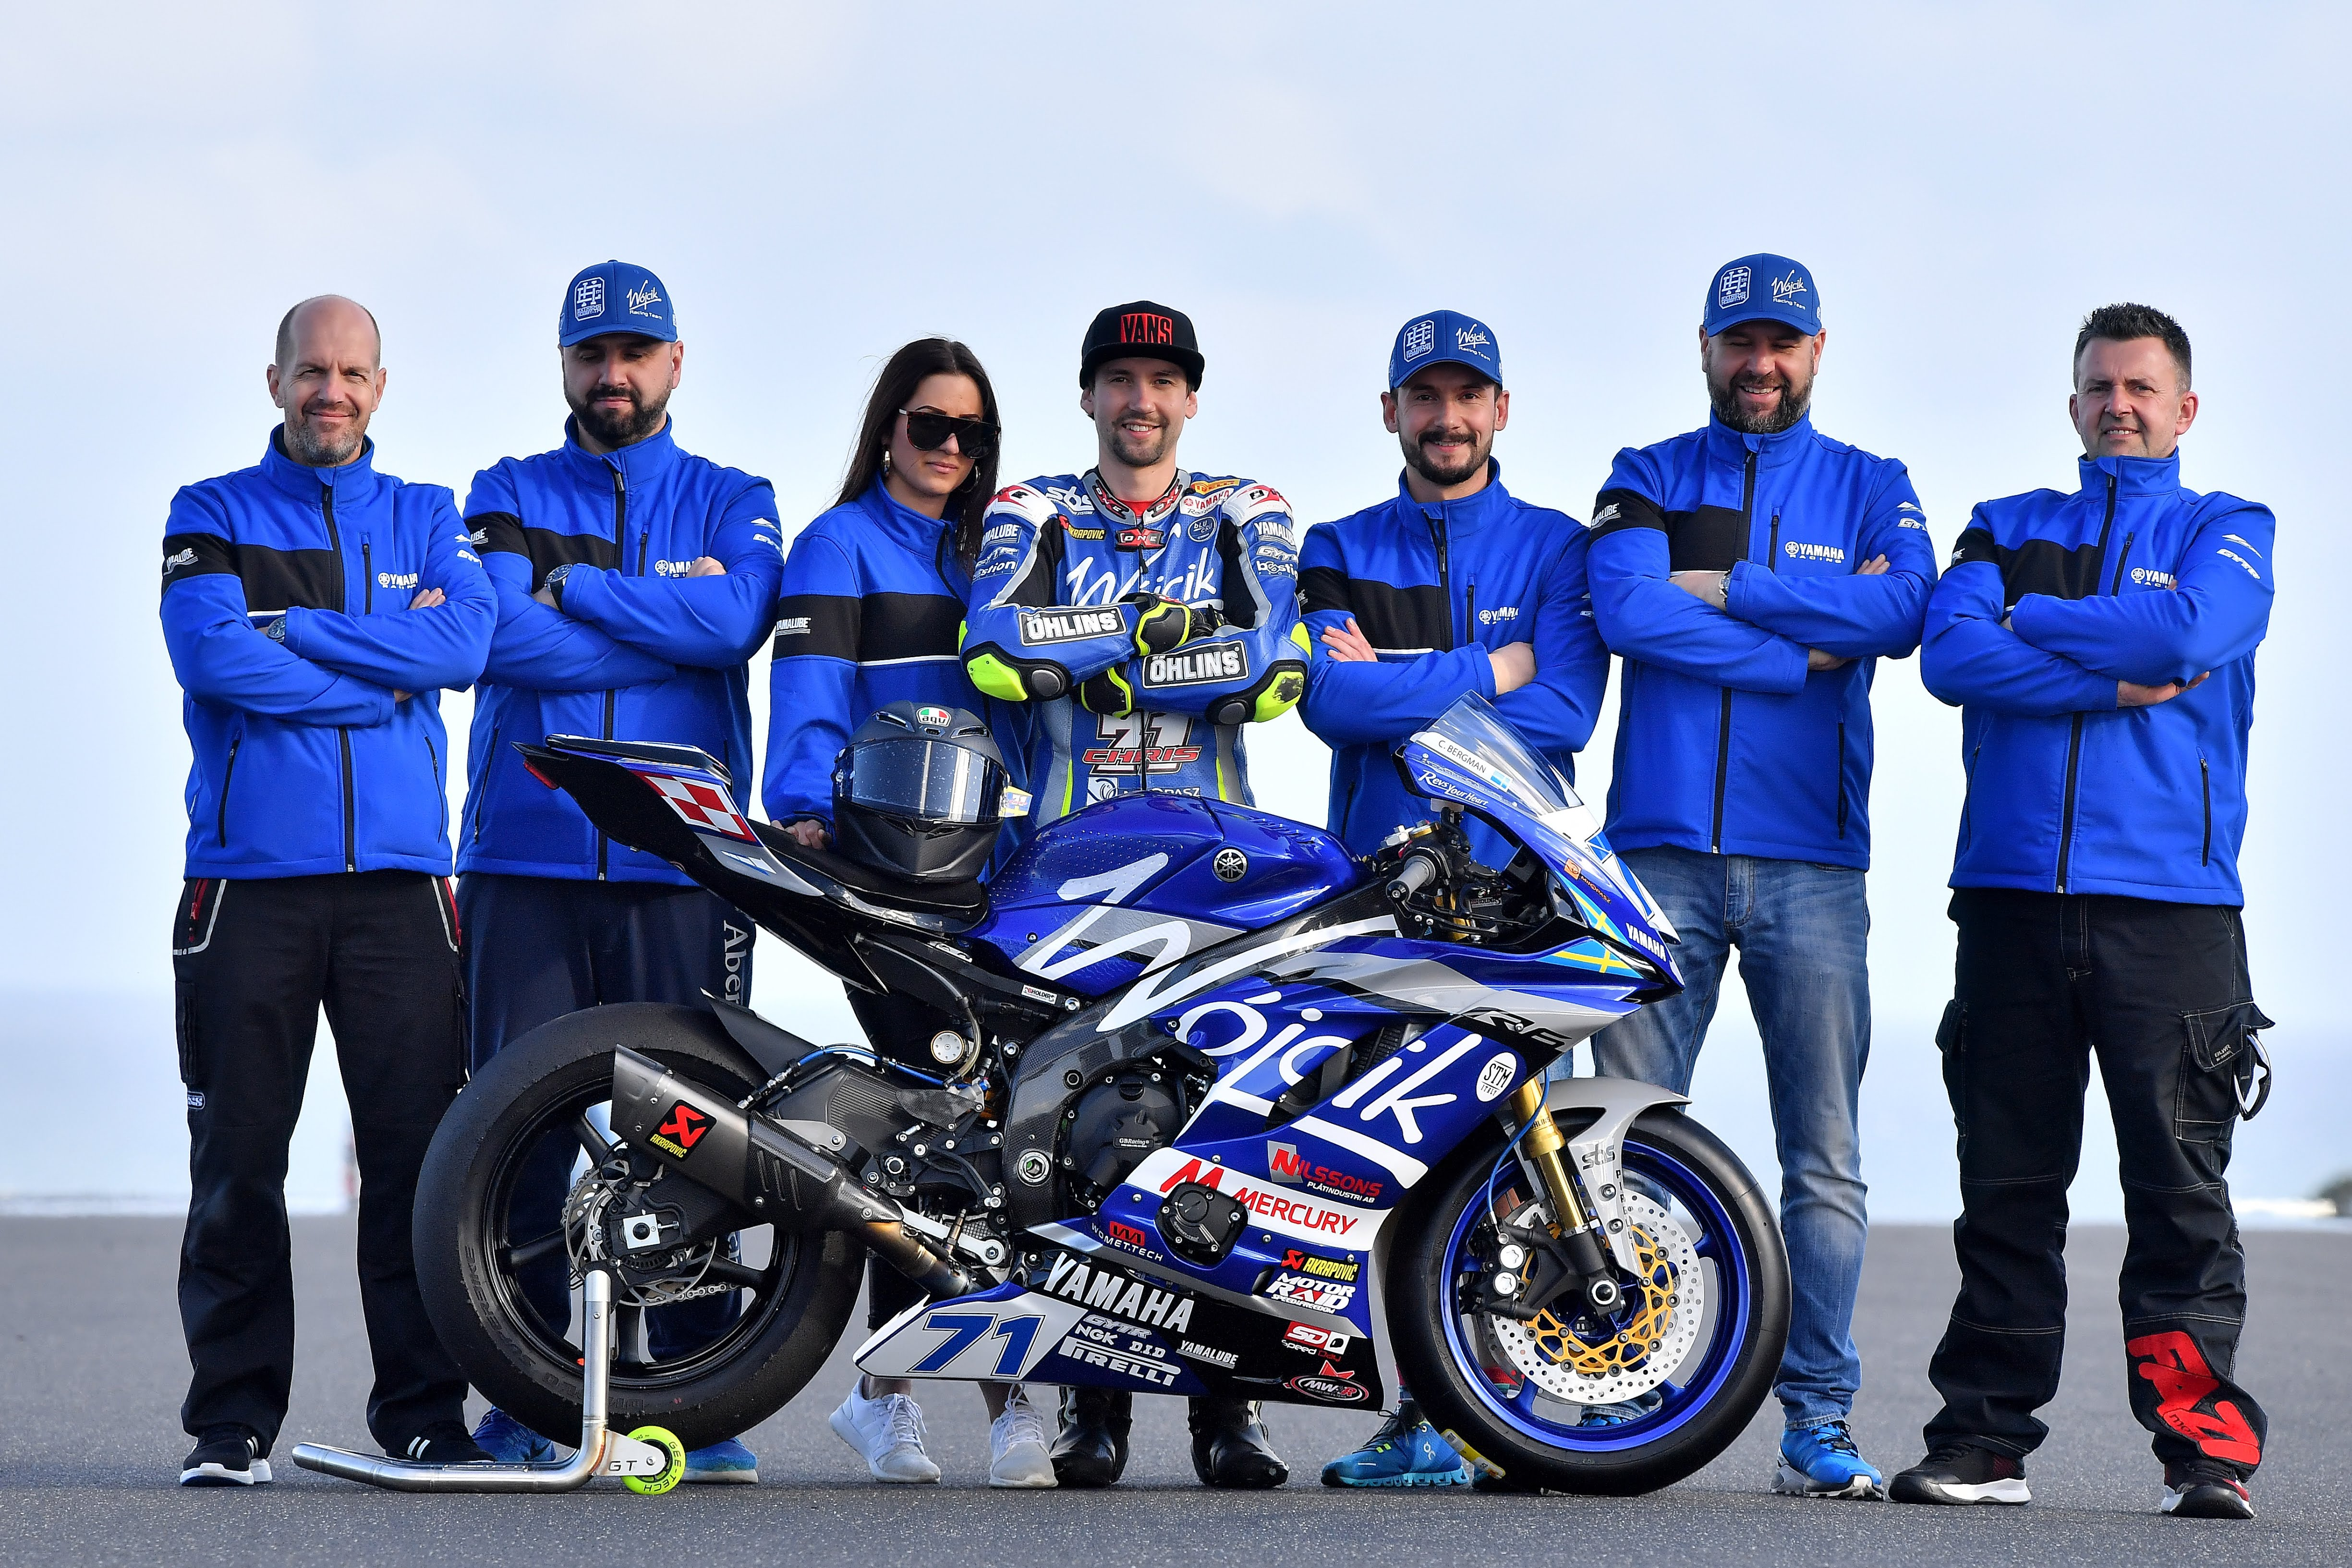 Wójcik Racing Team już w ten weekend zadebiutuje w WorldSSP!